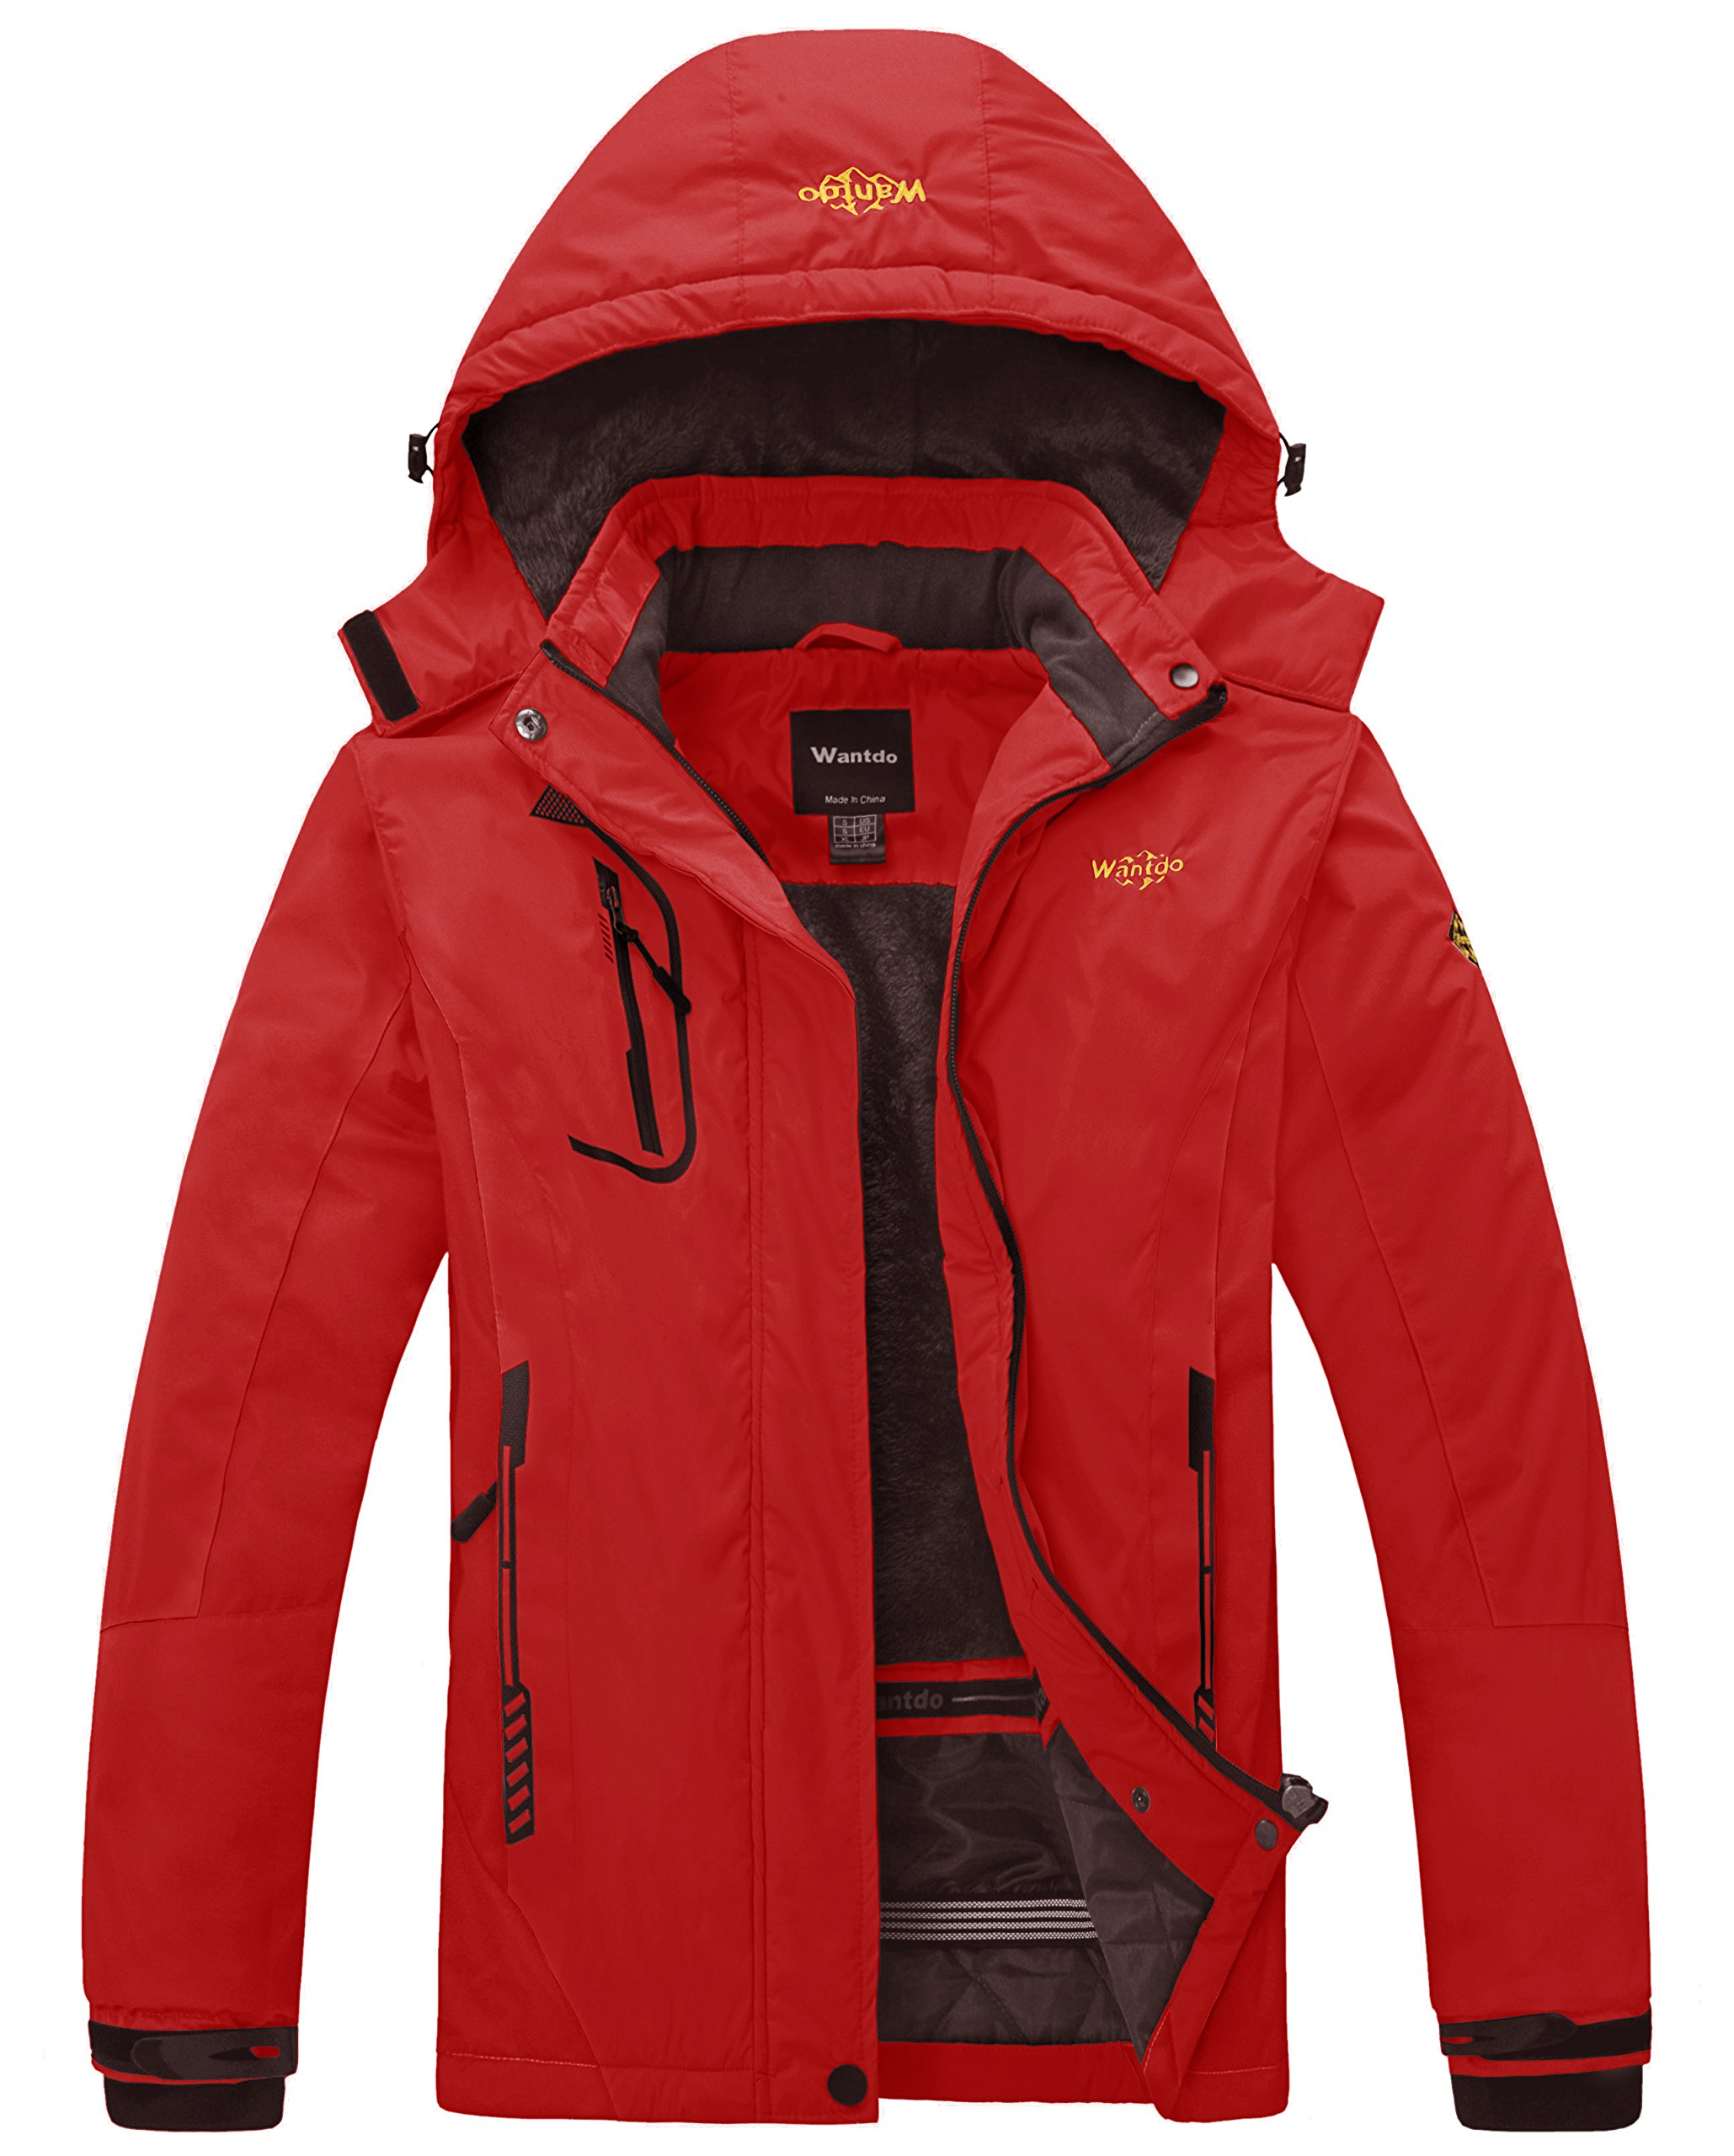 Wantdo Women's Waterproof Mountain Jacket Fleece Windproof Ski Jacket Hiking Jacket Bright Red Small by Wantdo